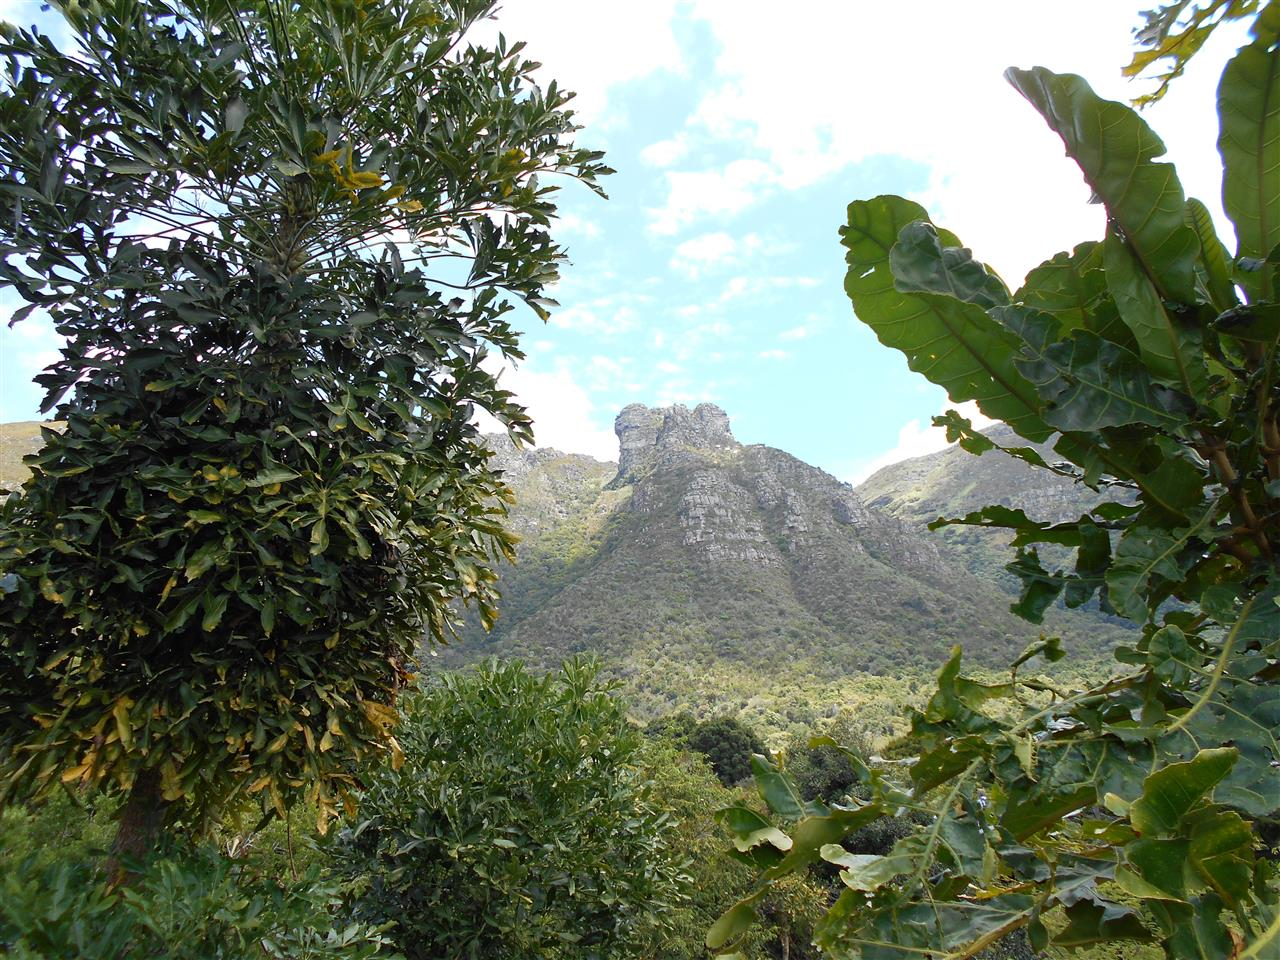 Cape Town, South Africa - view of Skeleton Gorge from Kirstenbosch Botanical Gardens